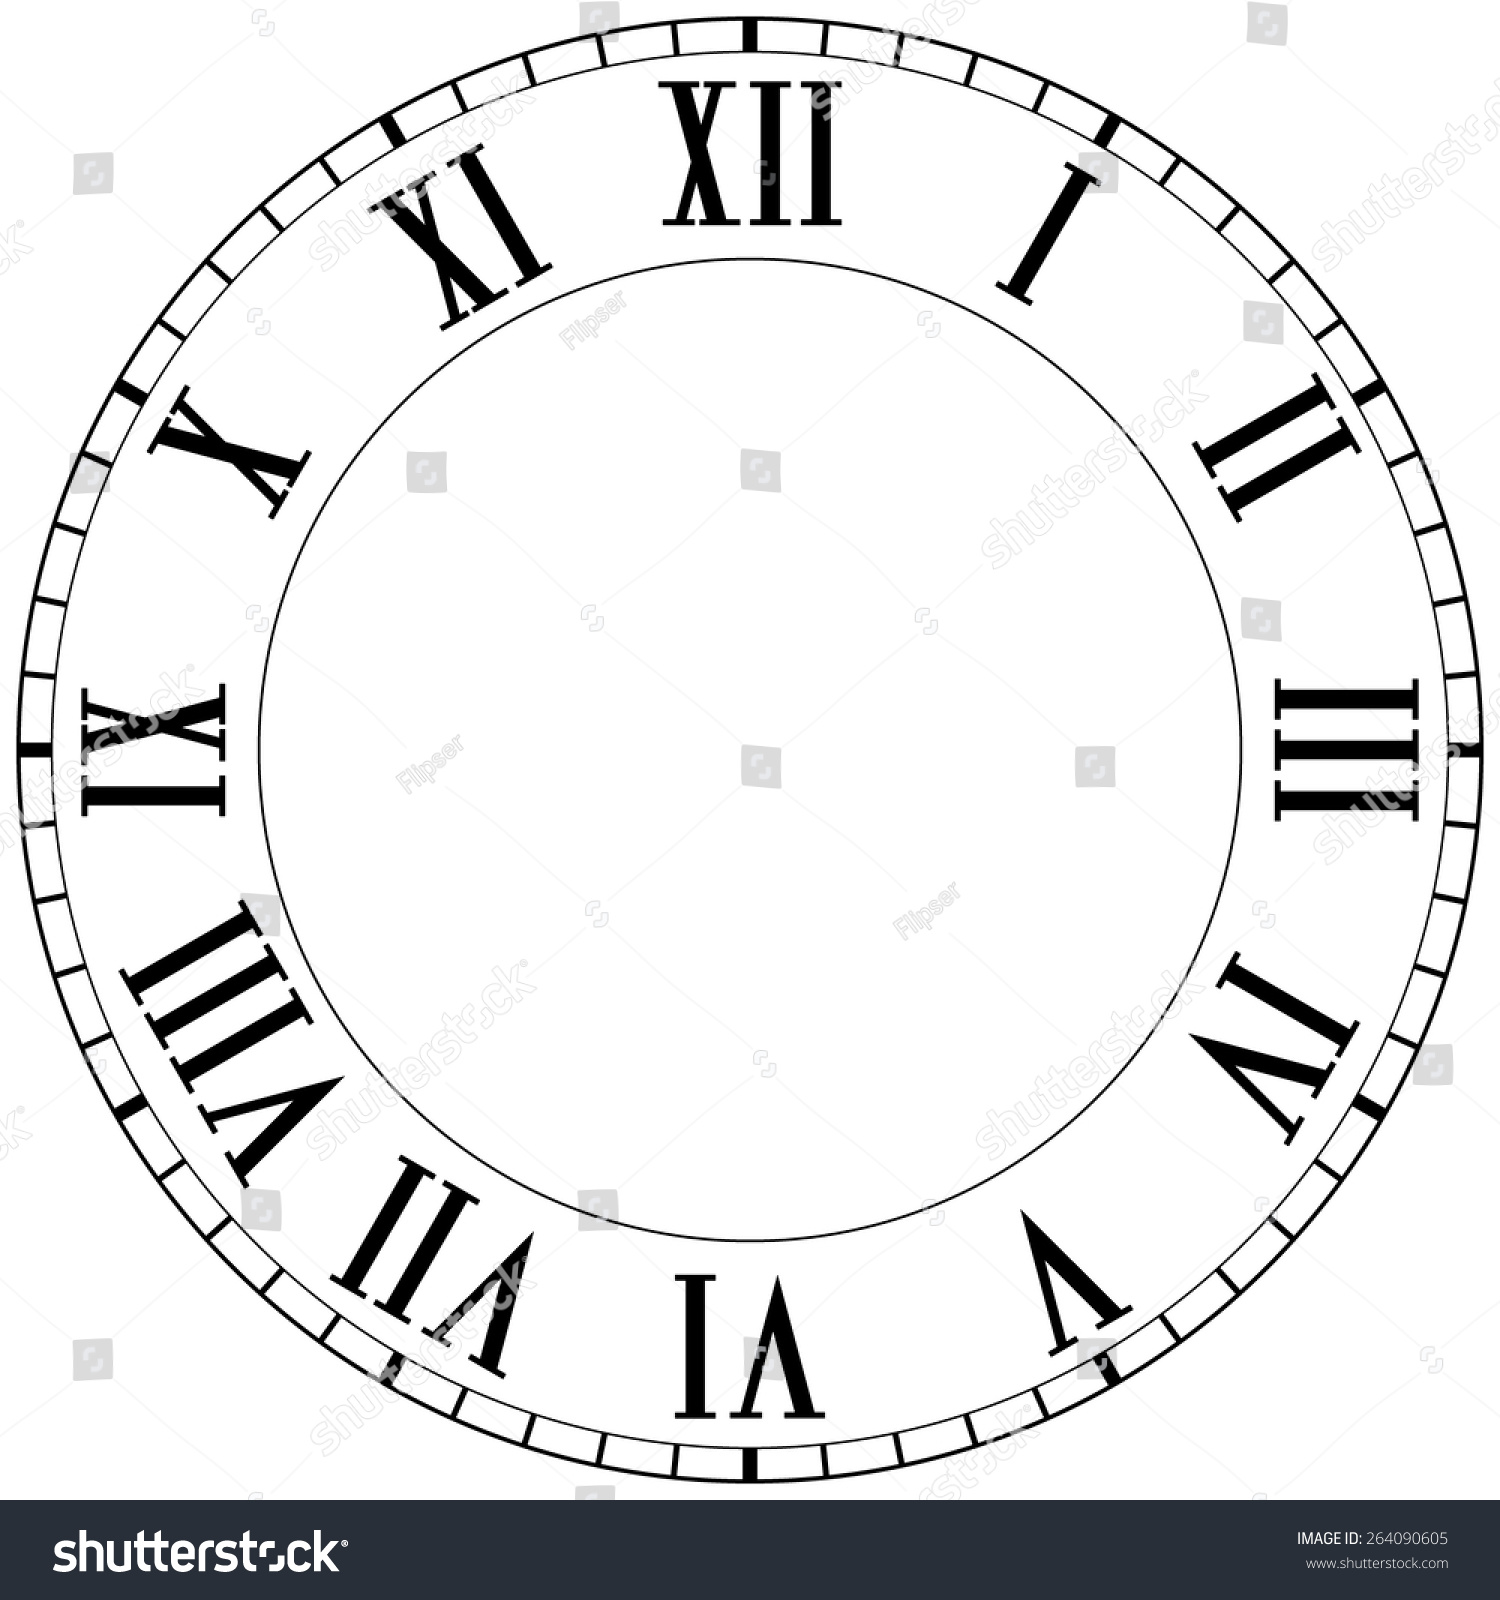 Worksheet Roman Numero vintage roman numeral clock vector illustration stock isolated on white background